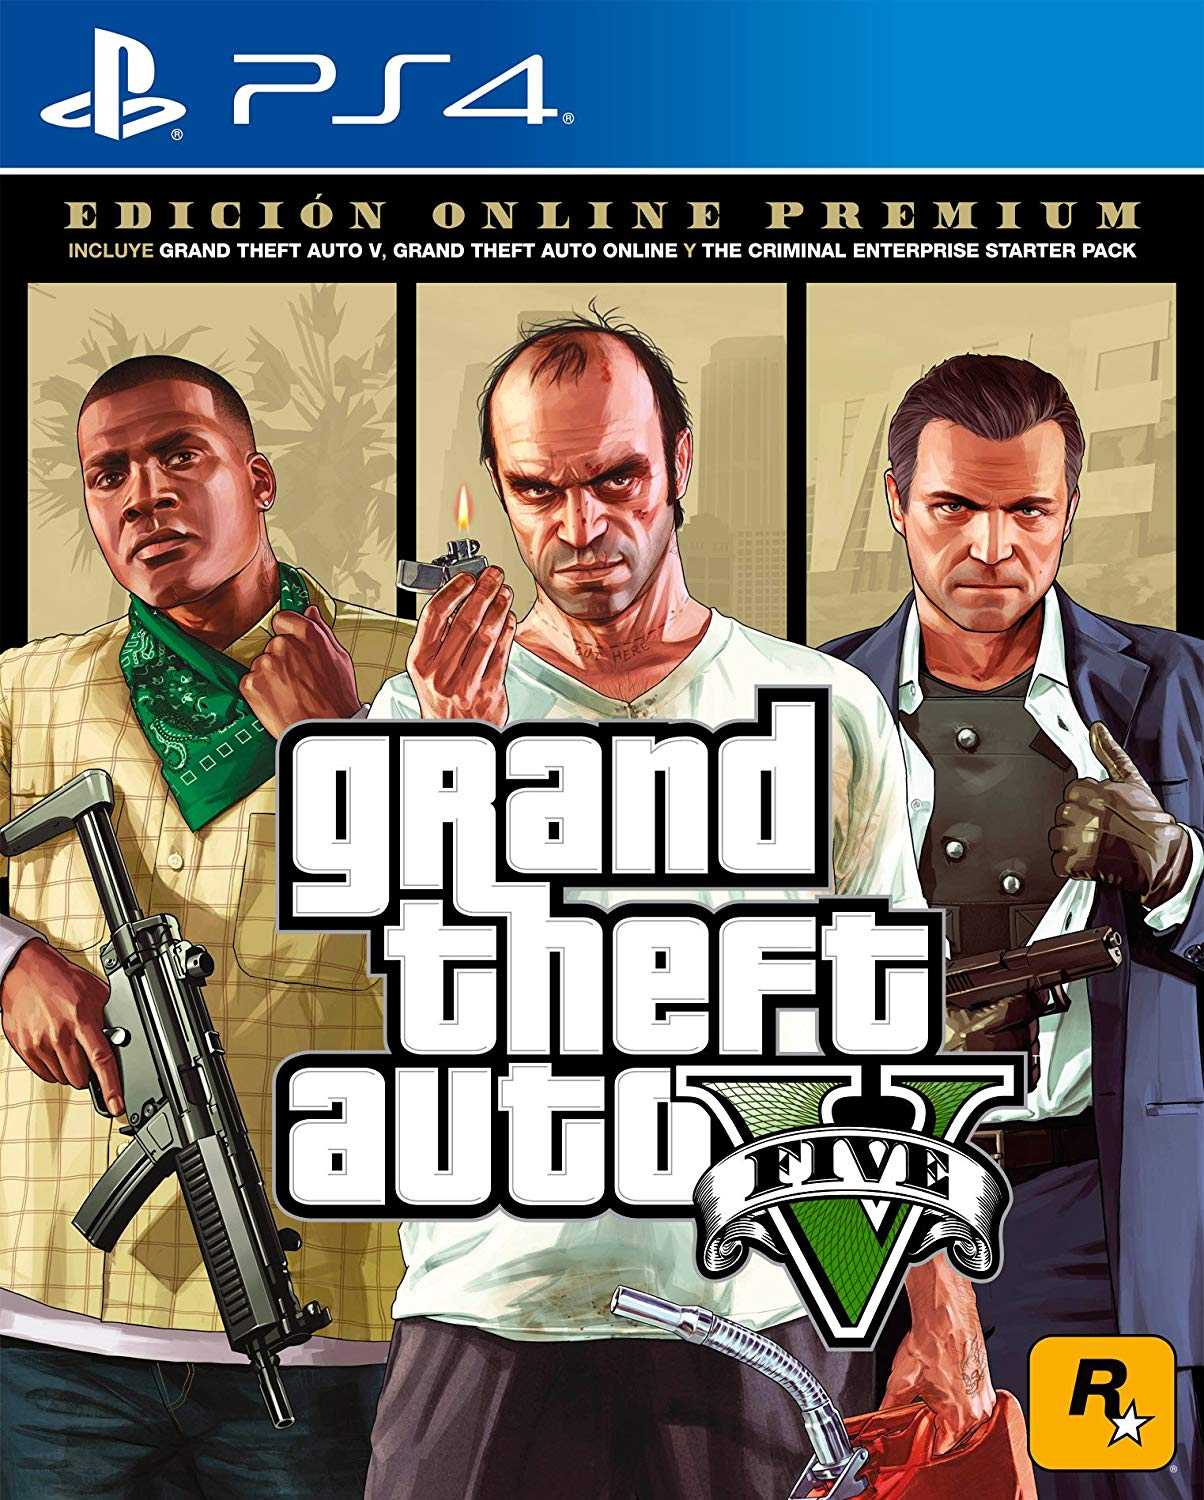 Grand Theft Auto 5 Premium Online Edition